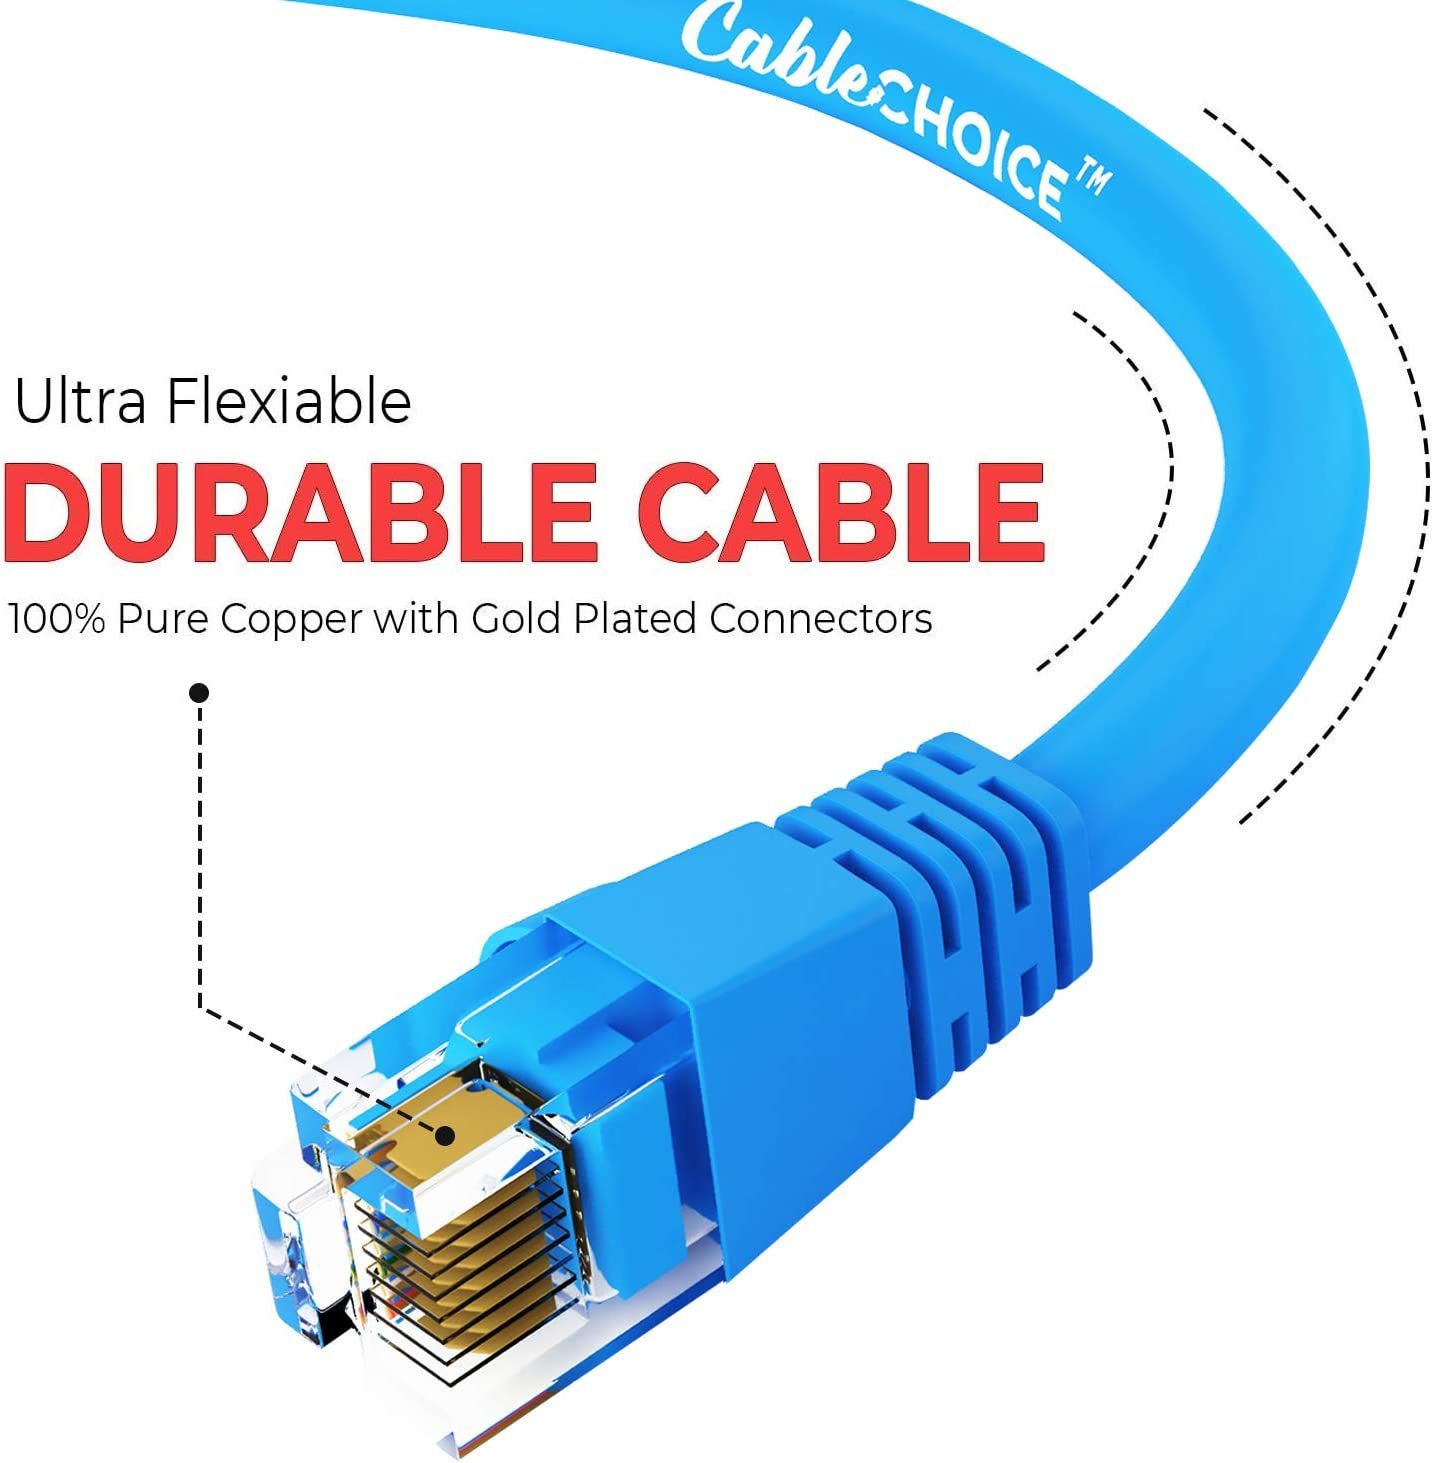 Cat5e Ethernet Cable UTP RJ45 10Gbps High Speed LAN Internet Patch Cord Computer Network Cable with Snagless Connector CABLECHOICE 5-Pack Available 28 Lengths and 10 Color 6 Feet - Orange